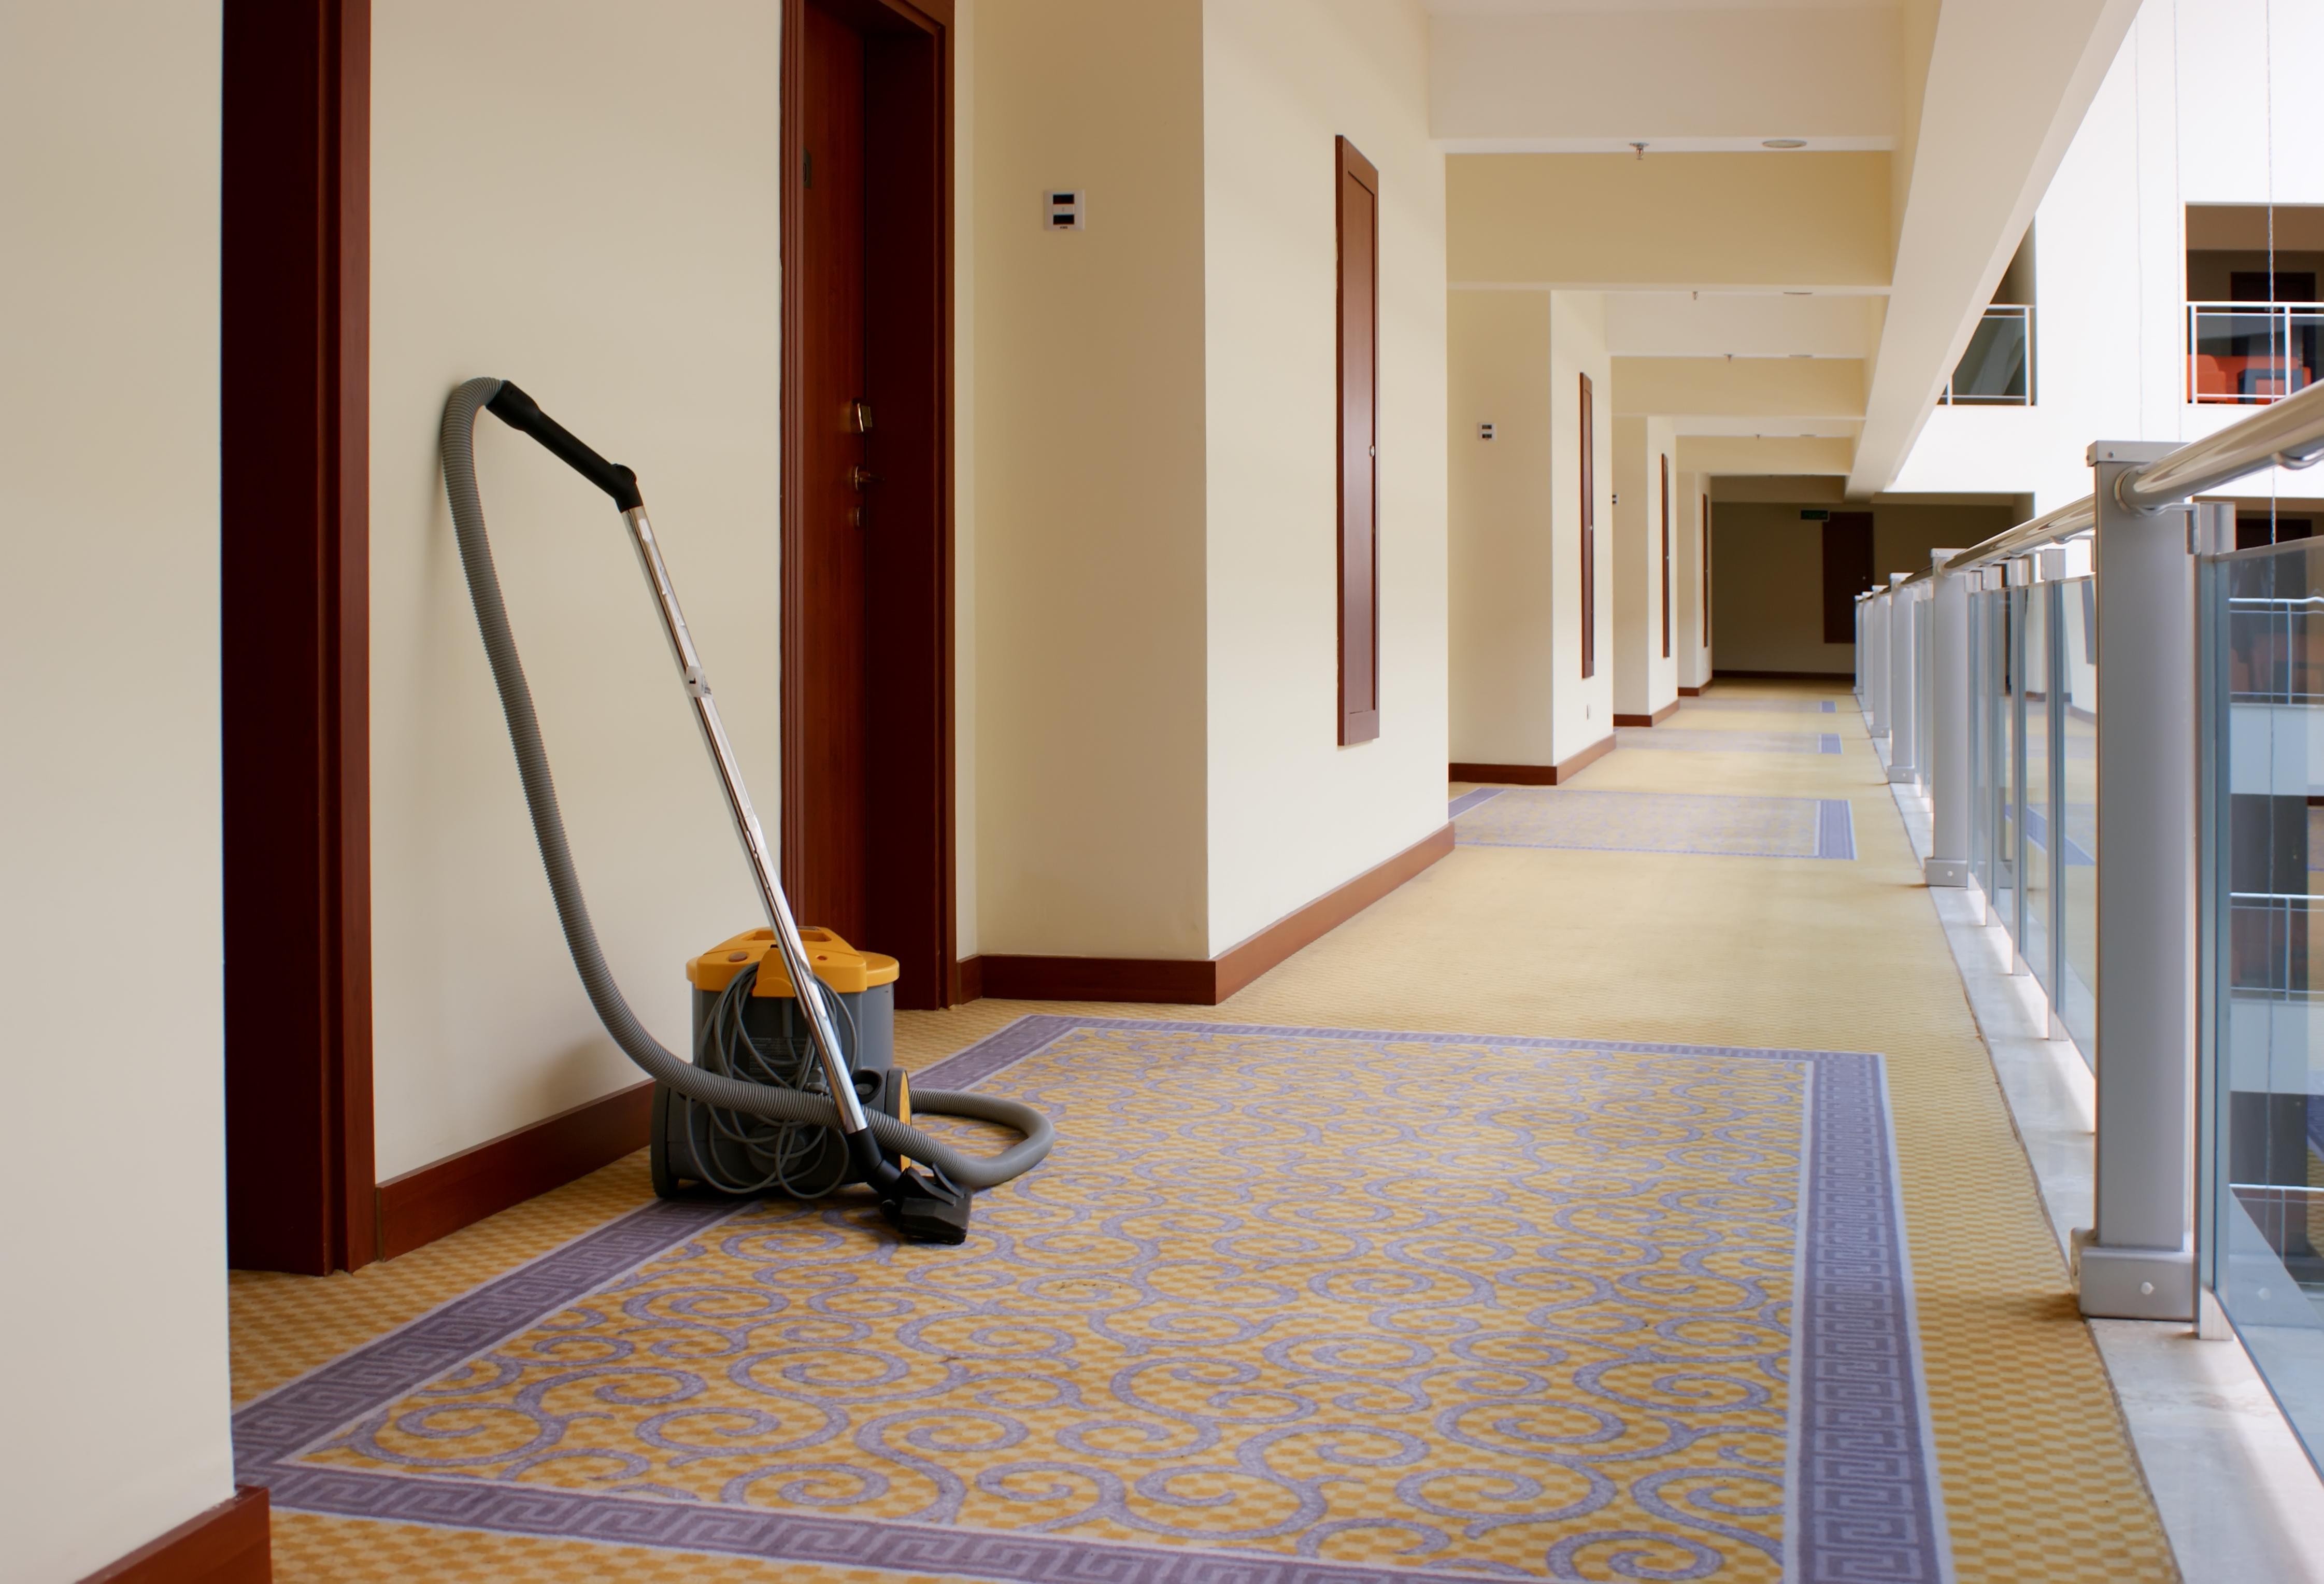 Cleaning Services Construction Amp Remodeling Hanover Pa